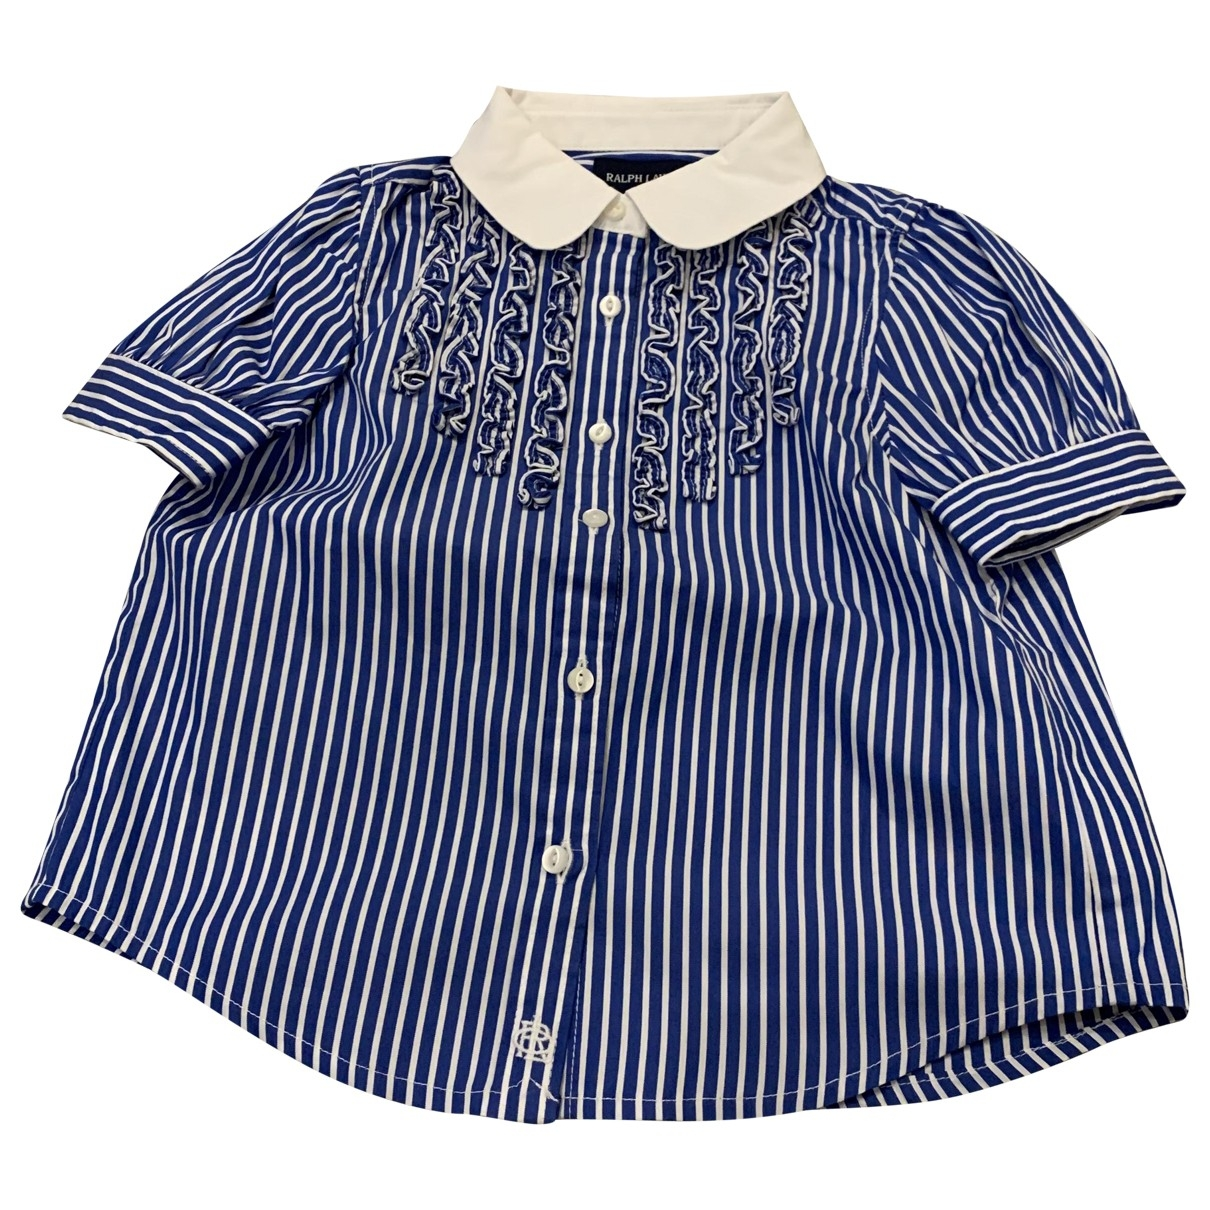 Ralph Lauren \N Cotton  top for Kids 3 years - up to 98cm FR